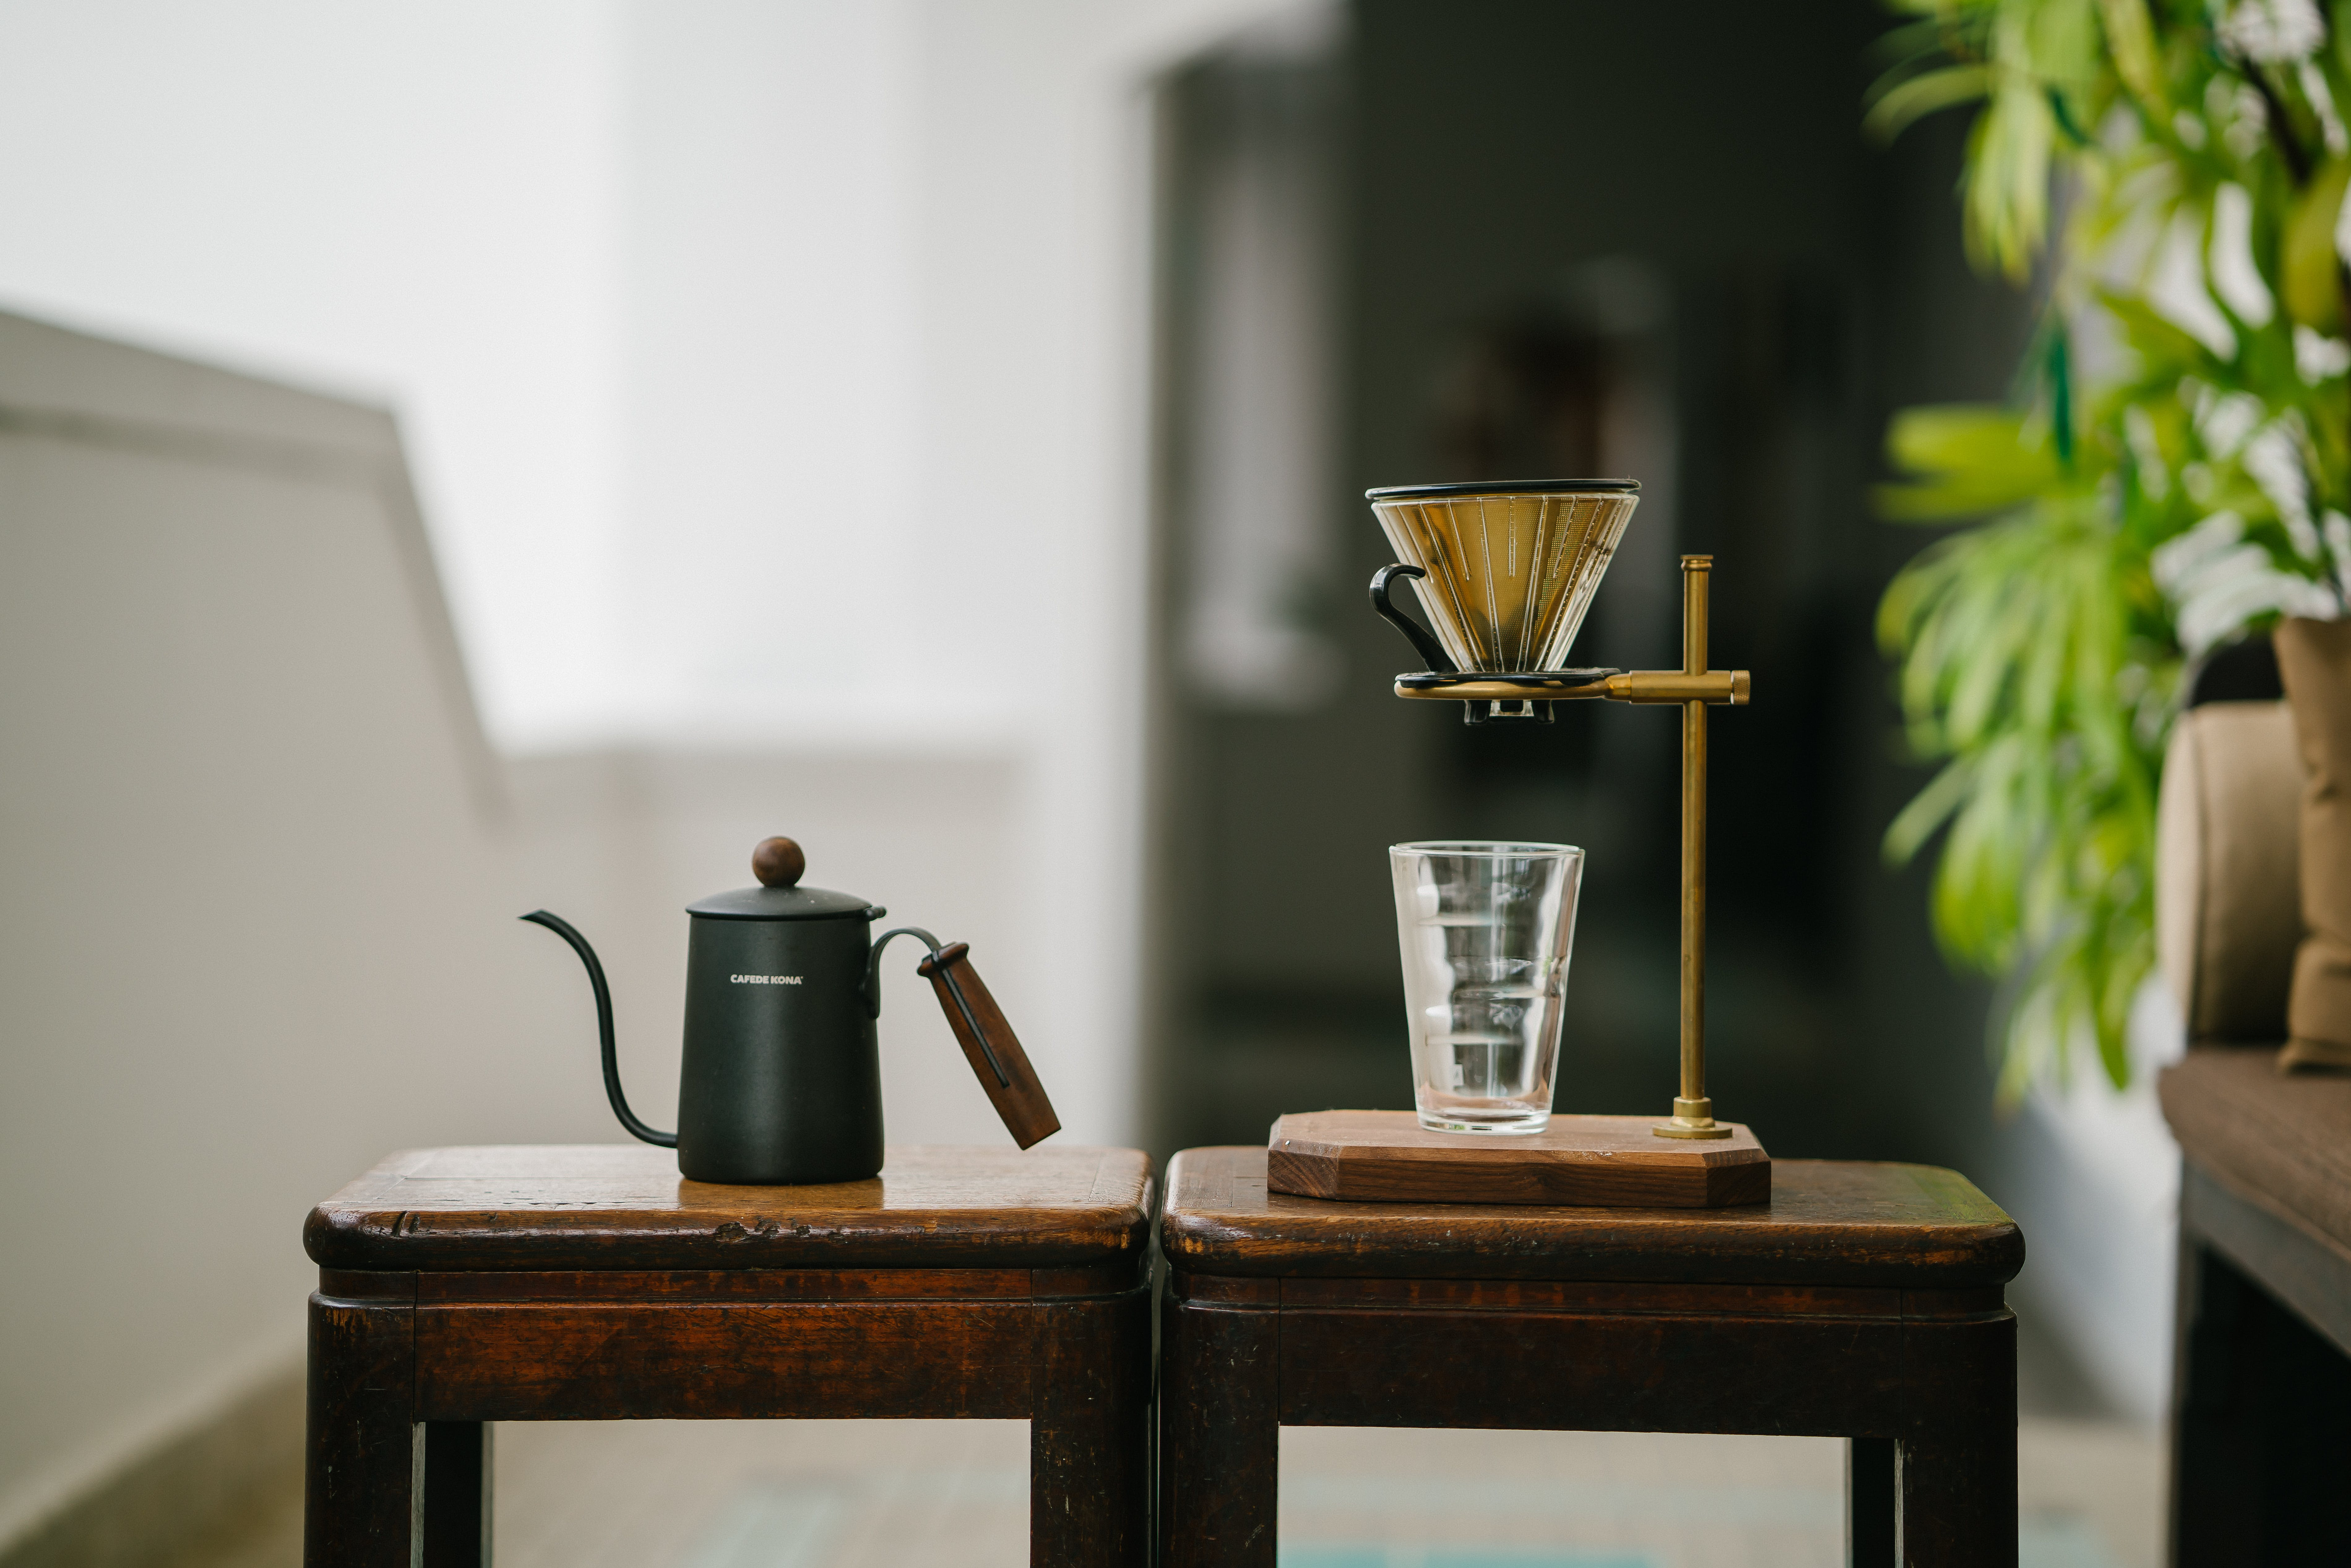 Teapot Beside Drinking Glass on Tables